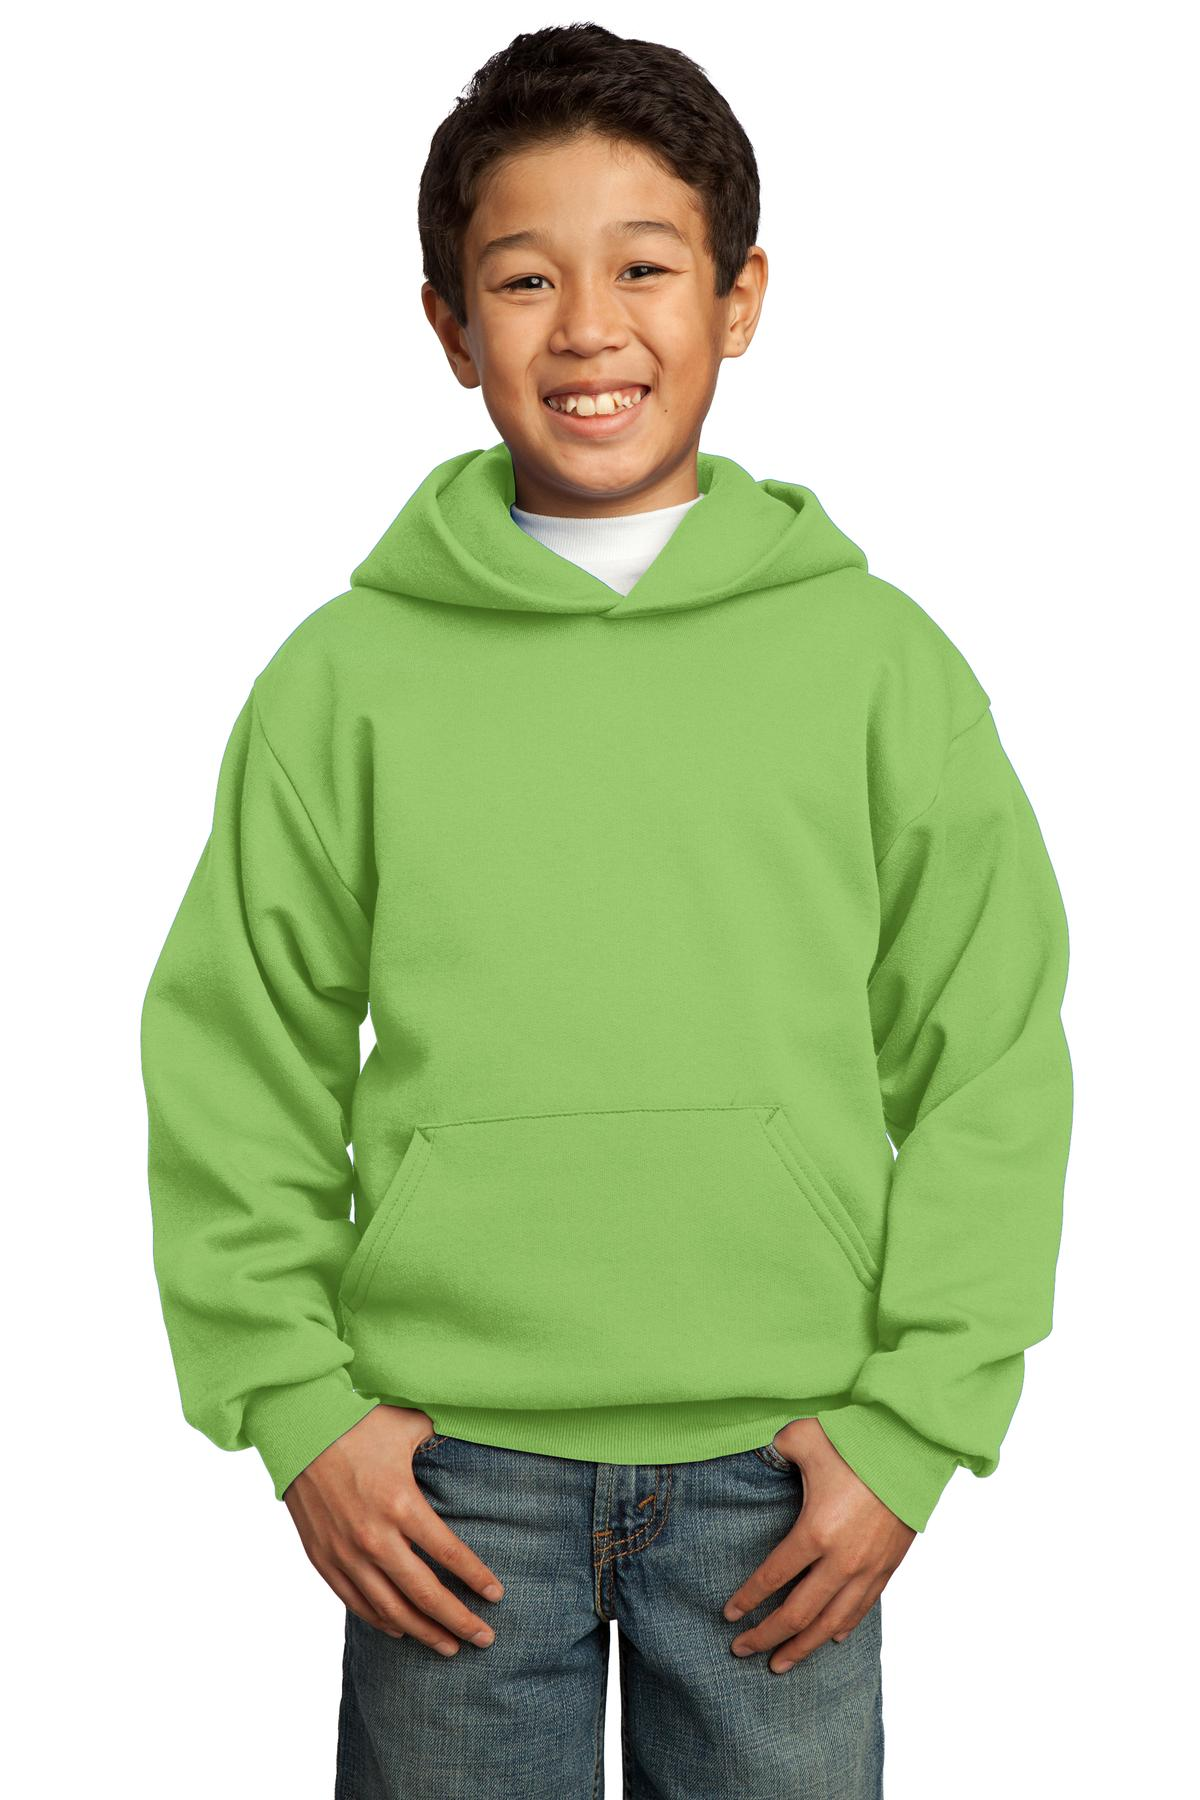 Lime Port & Company - Youth Core Fleece Pullover Hooded Sweatshirt.